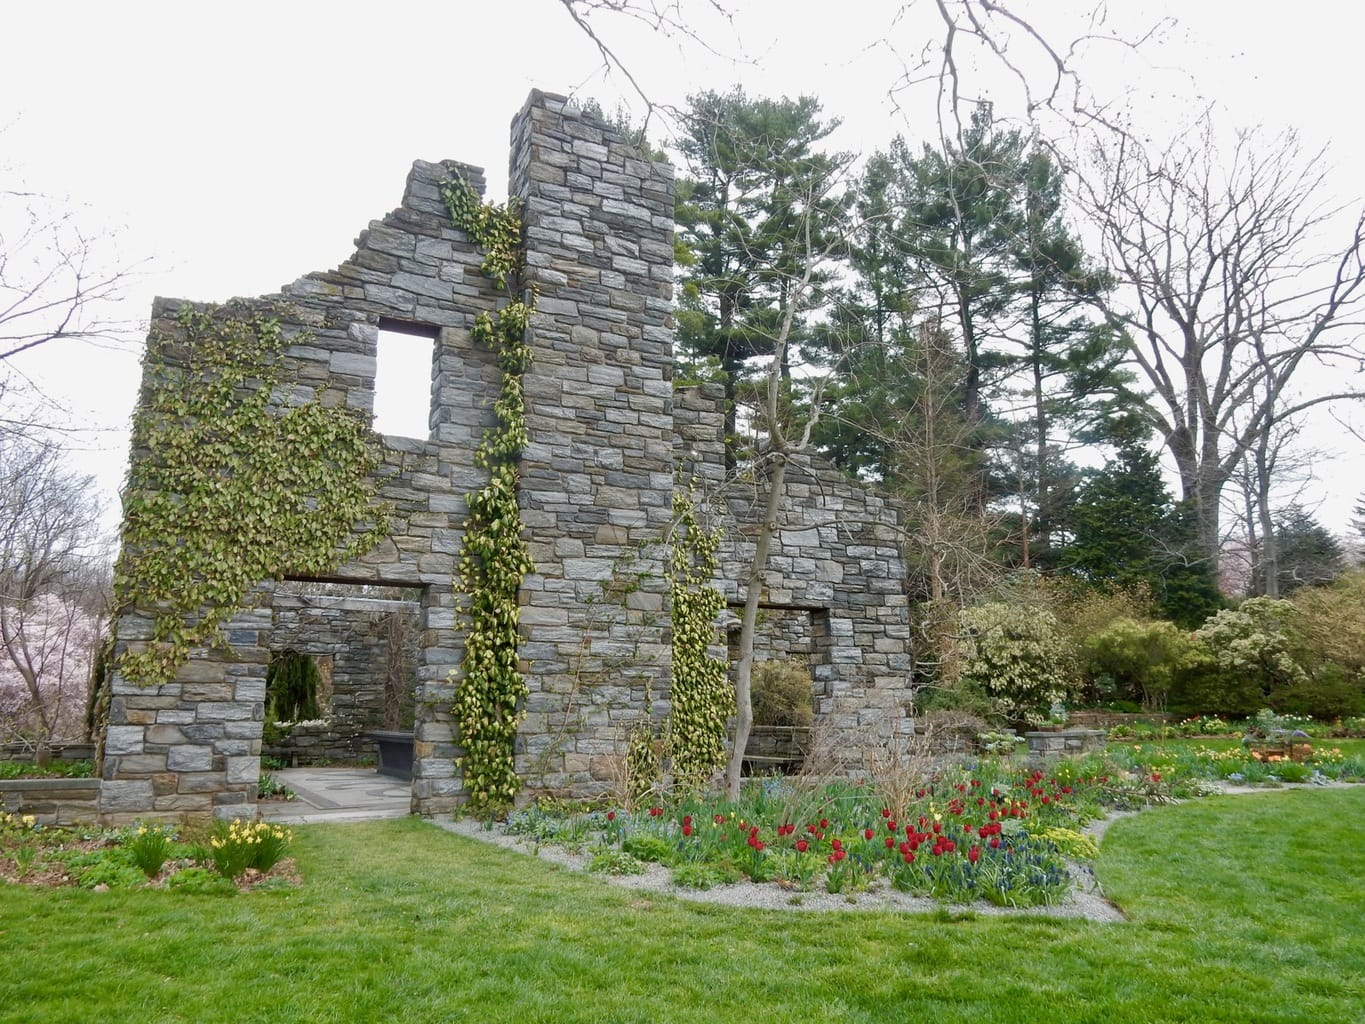 The Ruins, Chanticleer Garden, Wayne PA